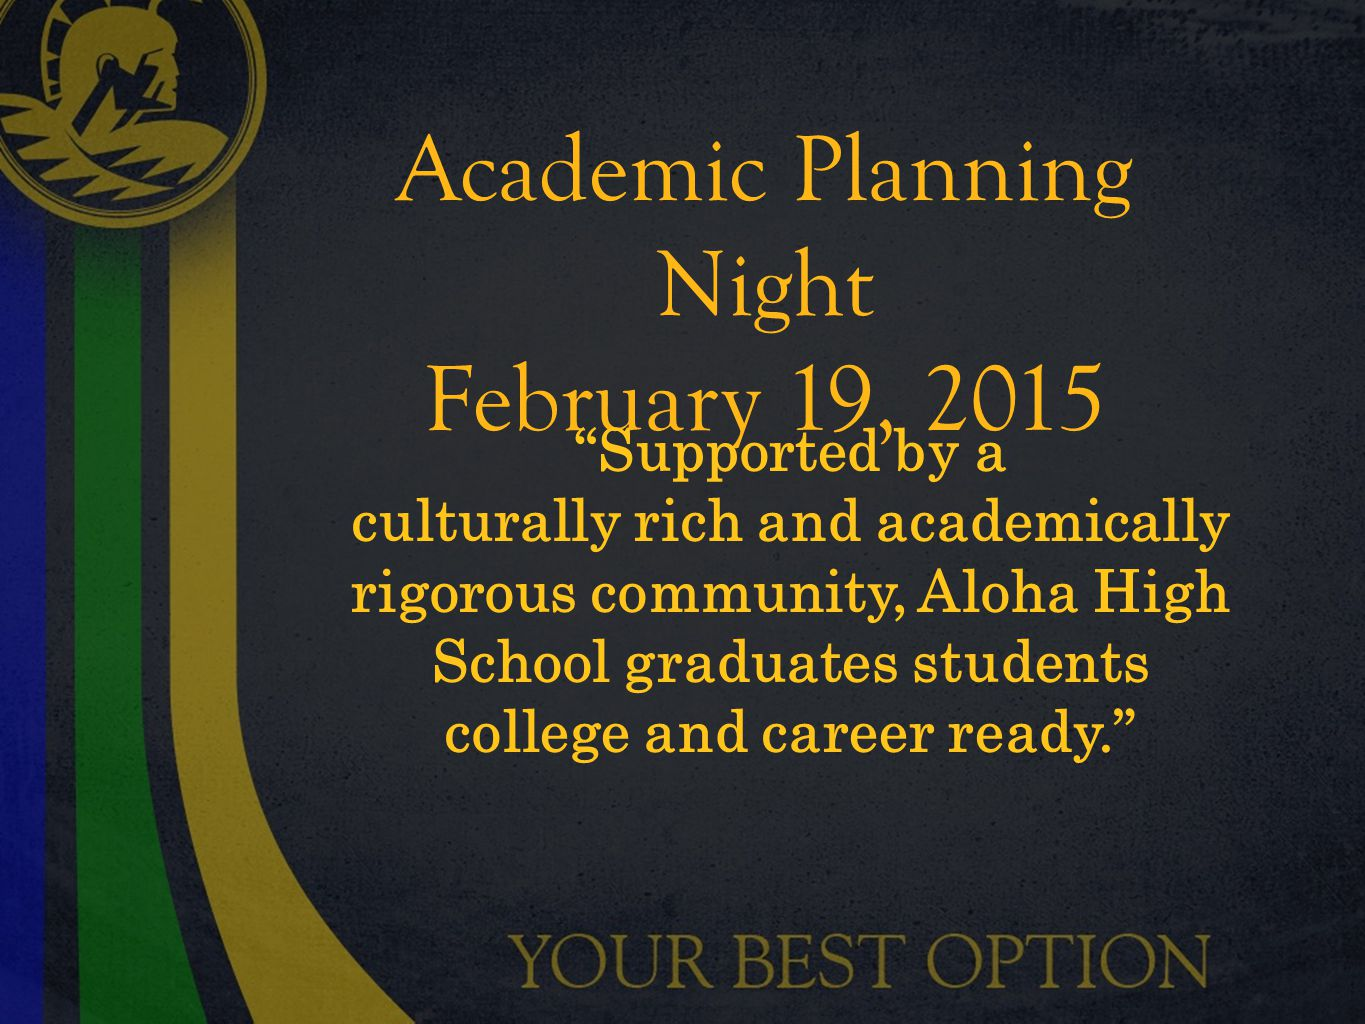 Academic Planning Night February 19, 2015 Supported by a culturally rich and academically rigorous community, Aloha High School graduates students college and career ready.